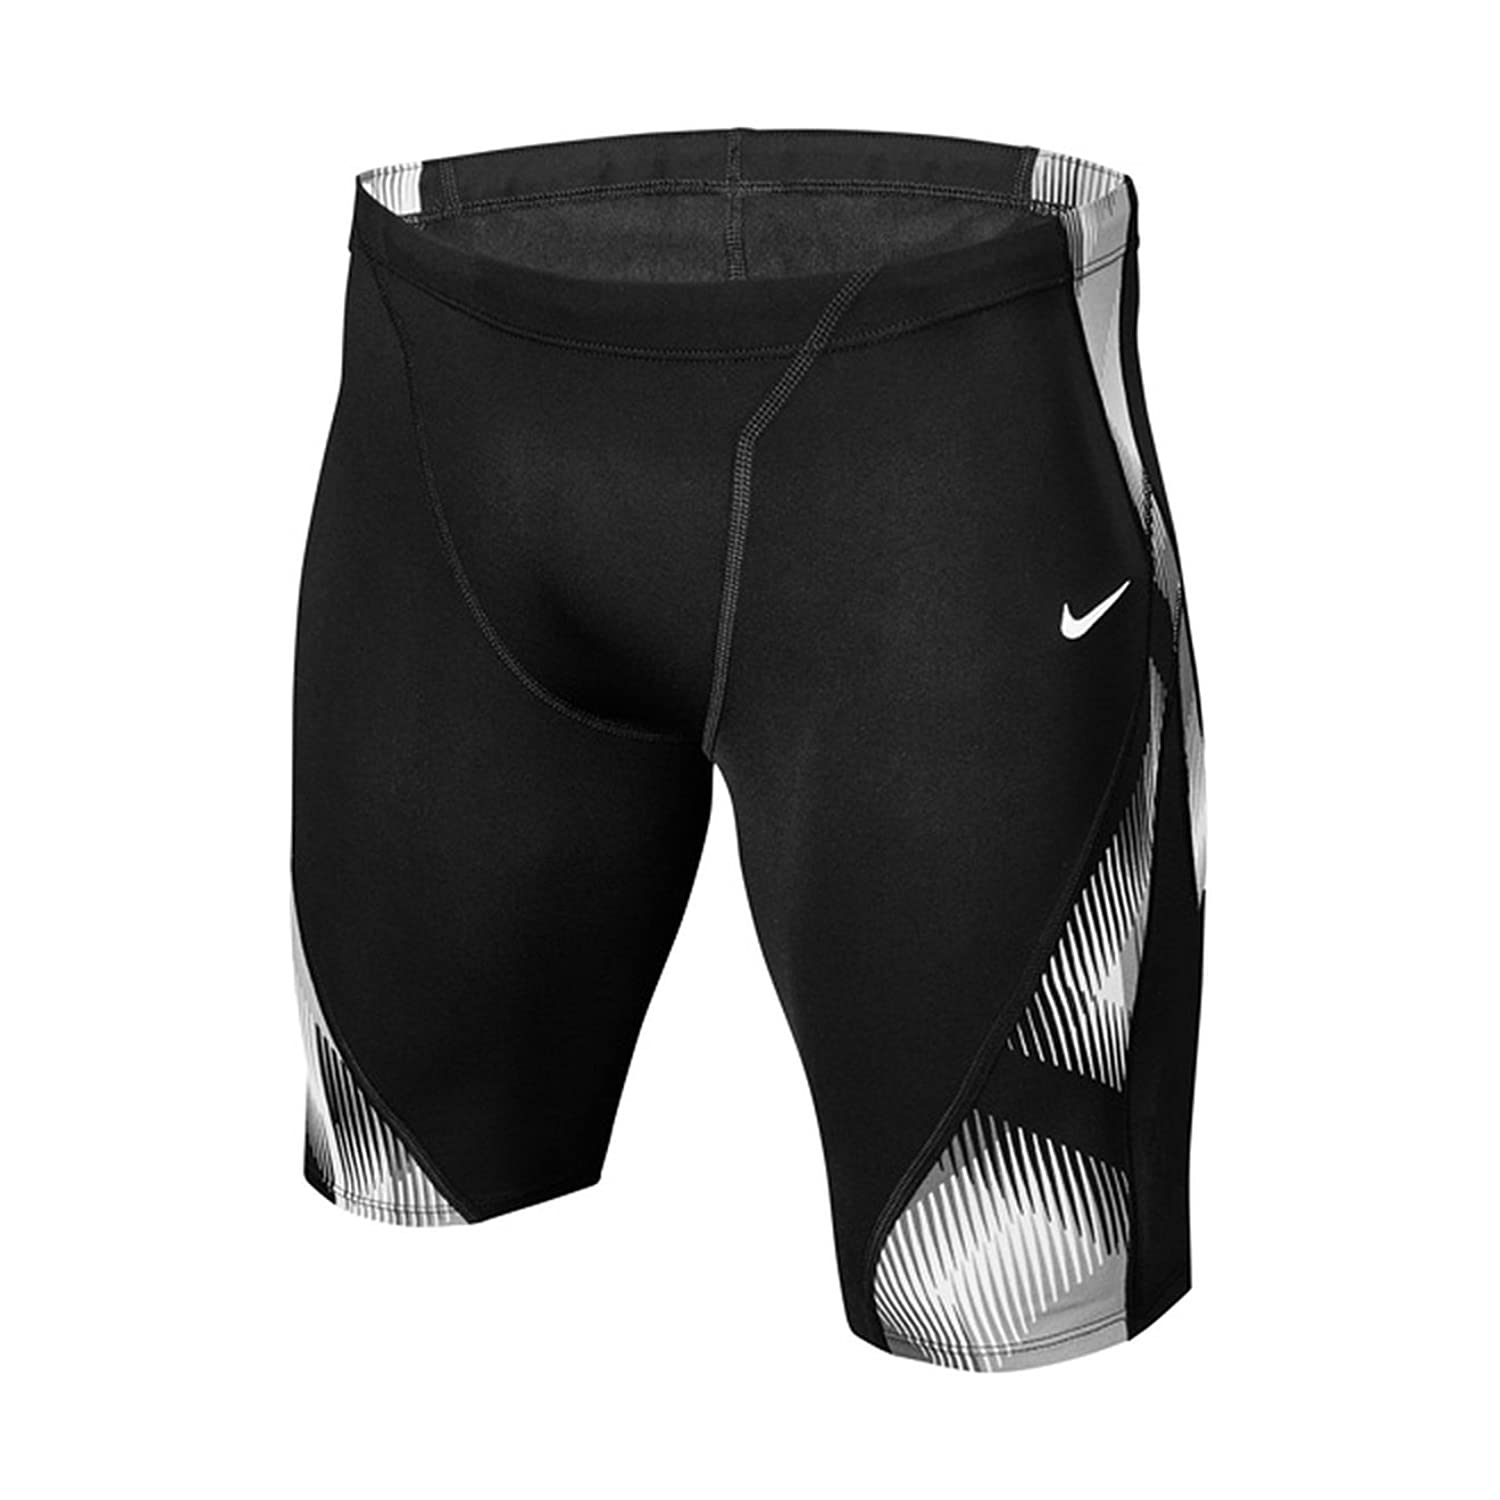 Nike Men's Beam Jammer